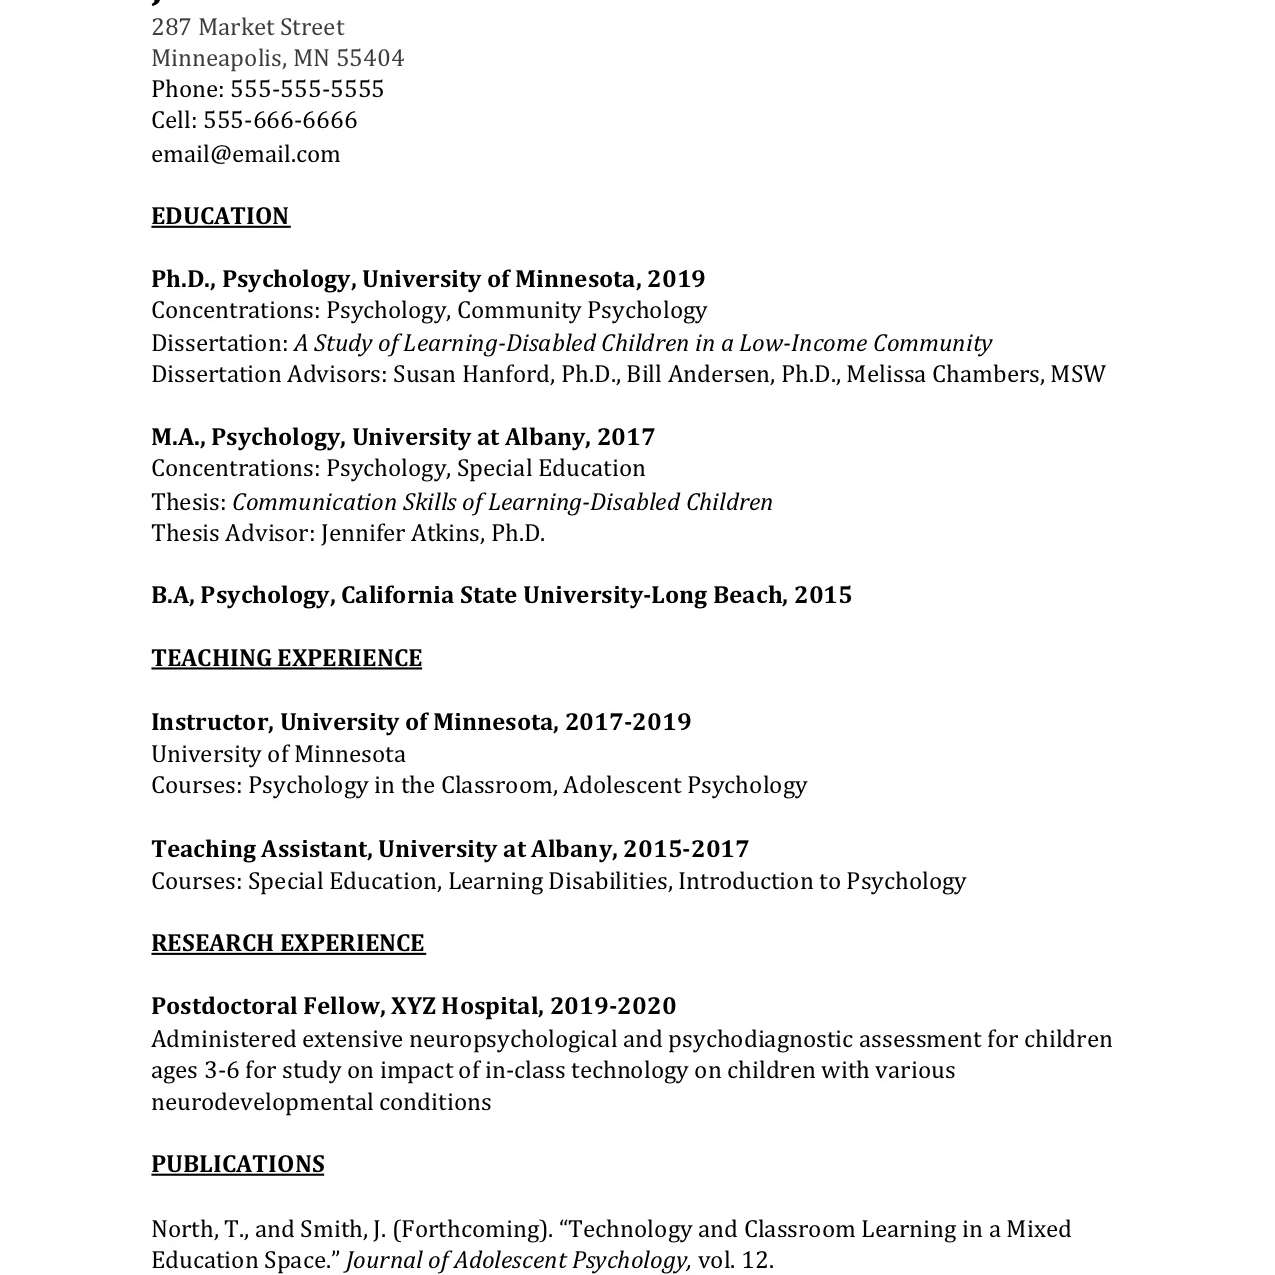 academic curriculum vitae cv example and writing tips research experience resume free Resume Research Experience Resume